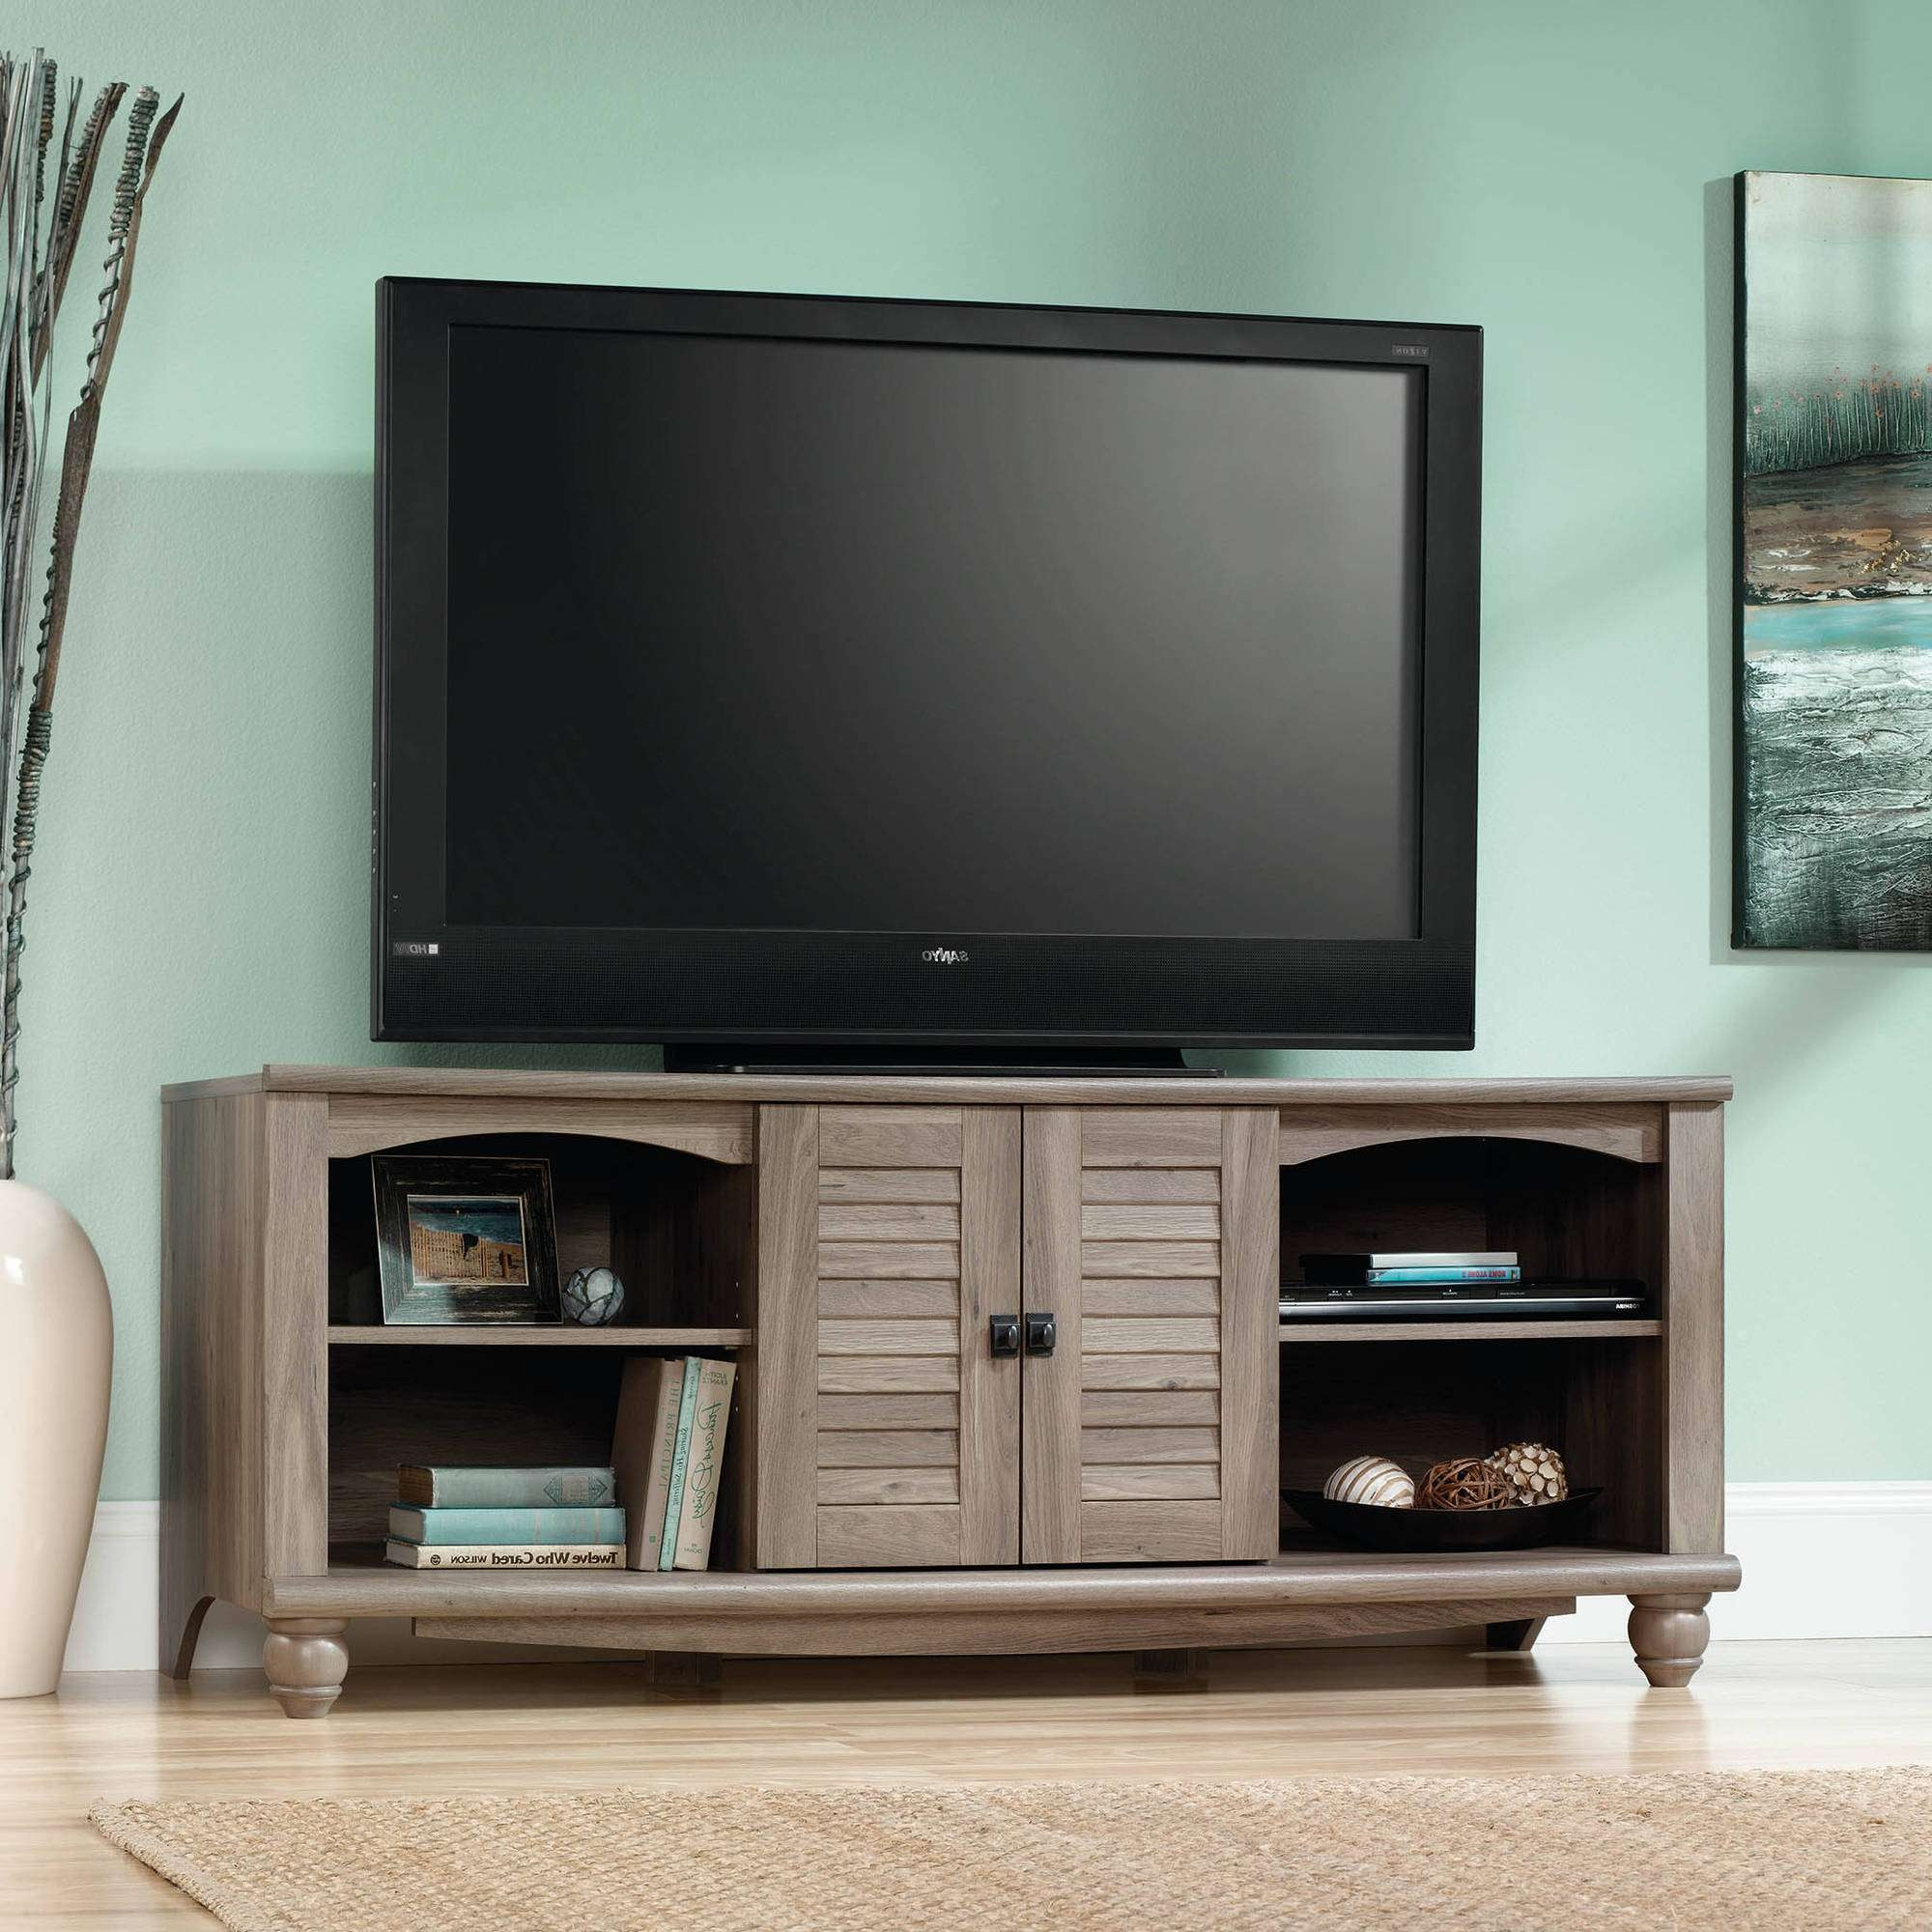 Furnitures : Corner Tv Stand For Inch Flat Screen Appealing On Pertaining To Corner Tv Stands For 60 Inch Flat Screens (View 14 of 15)